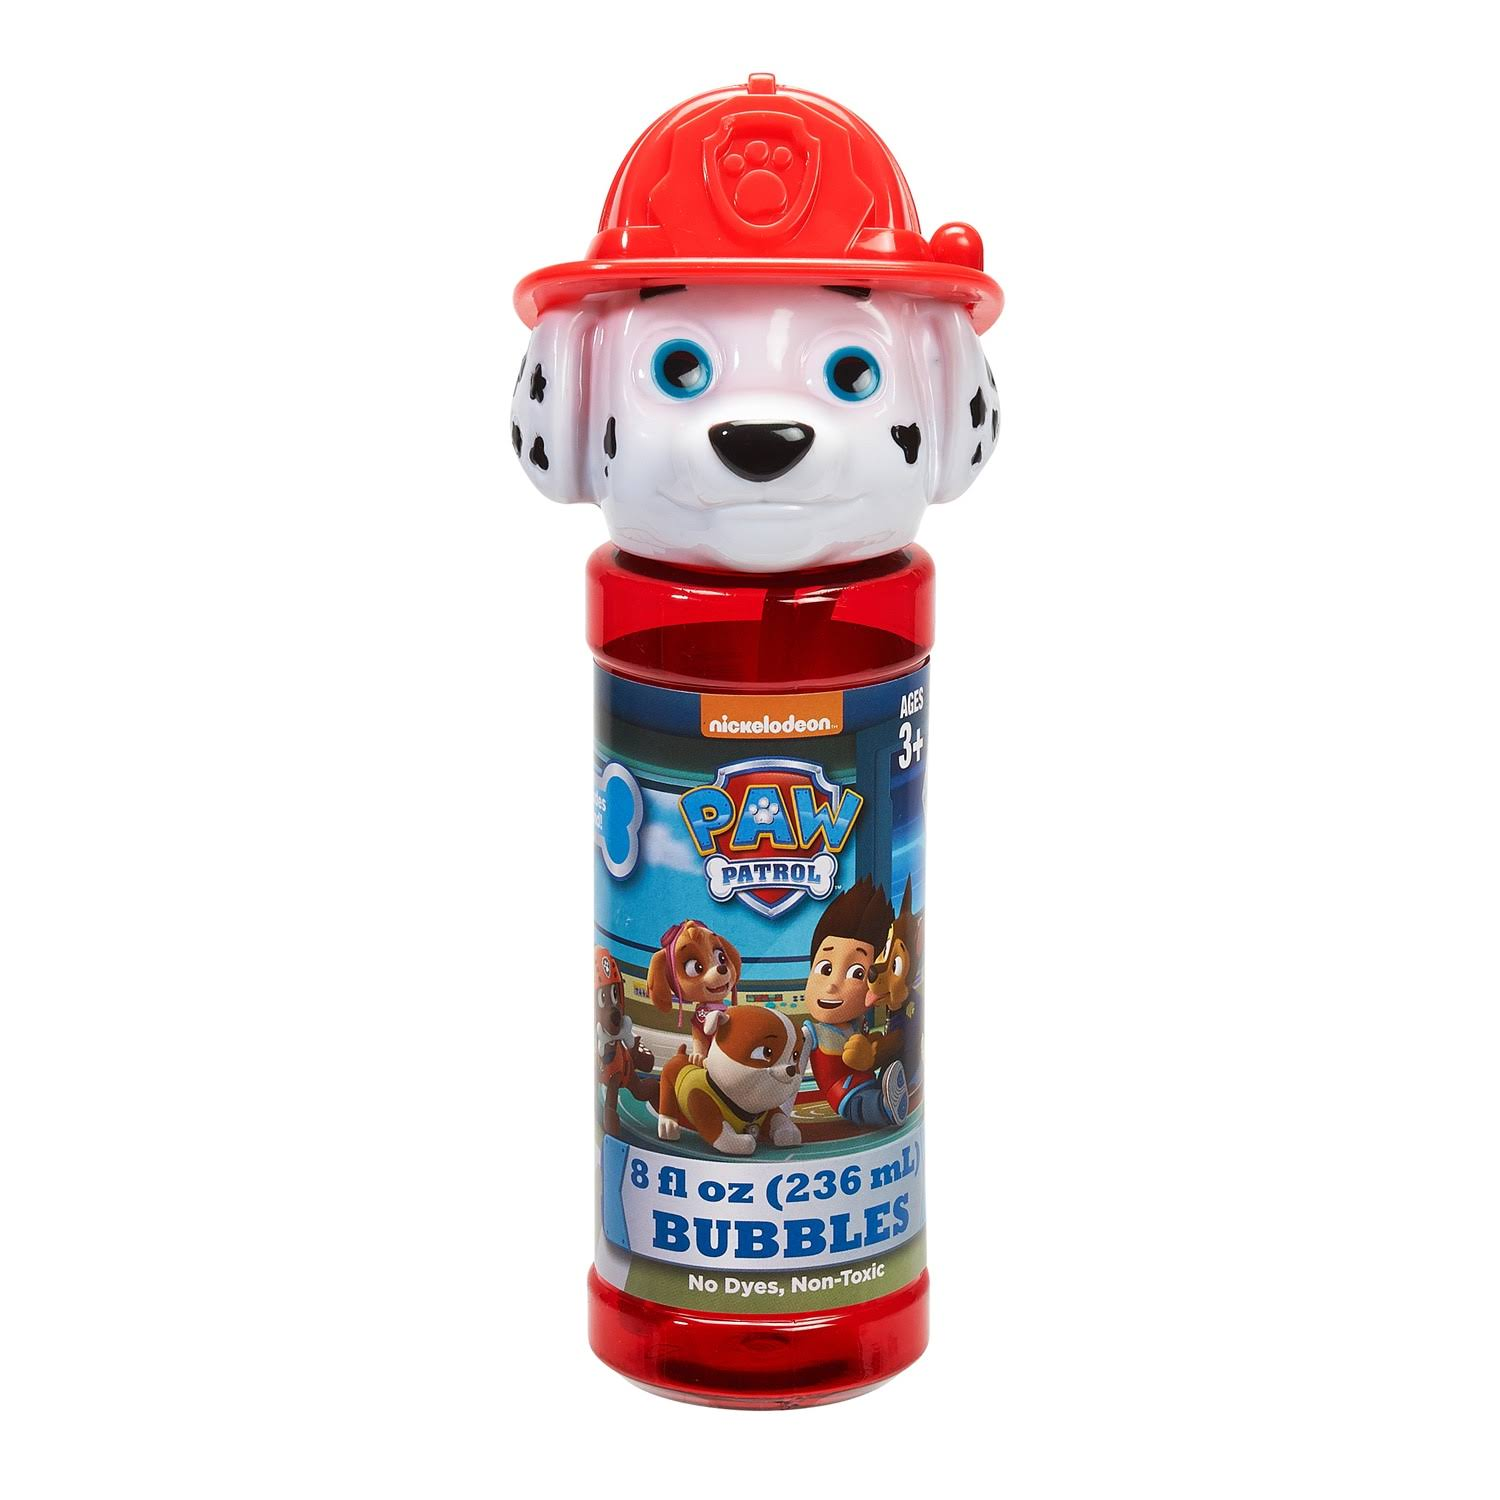 Paw Patrol Marshall Bubbles - 8oz